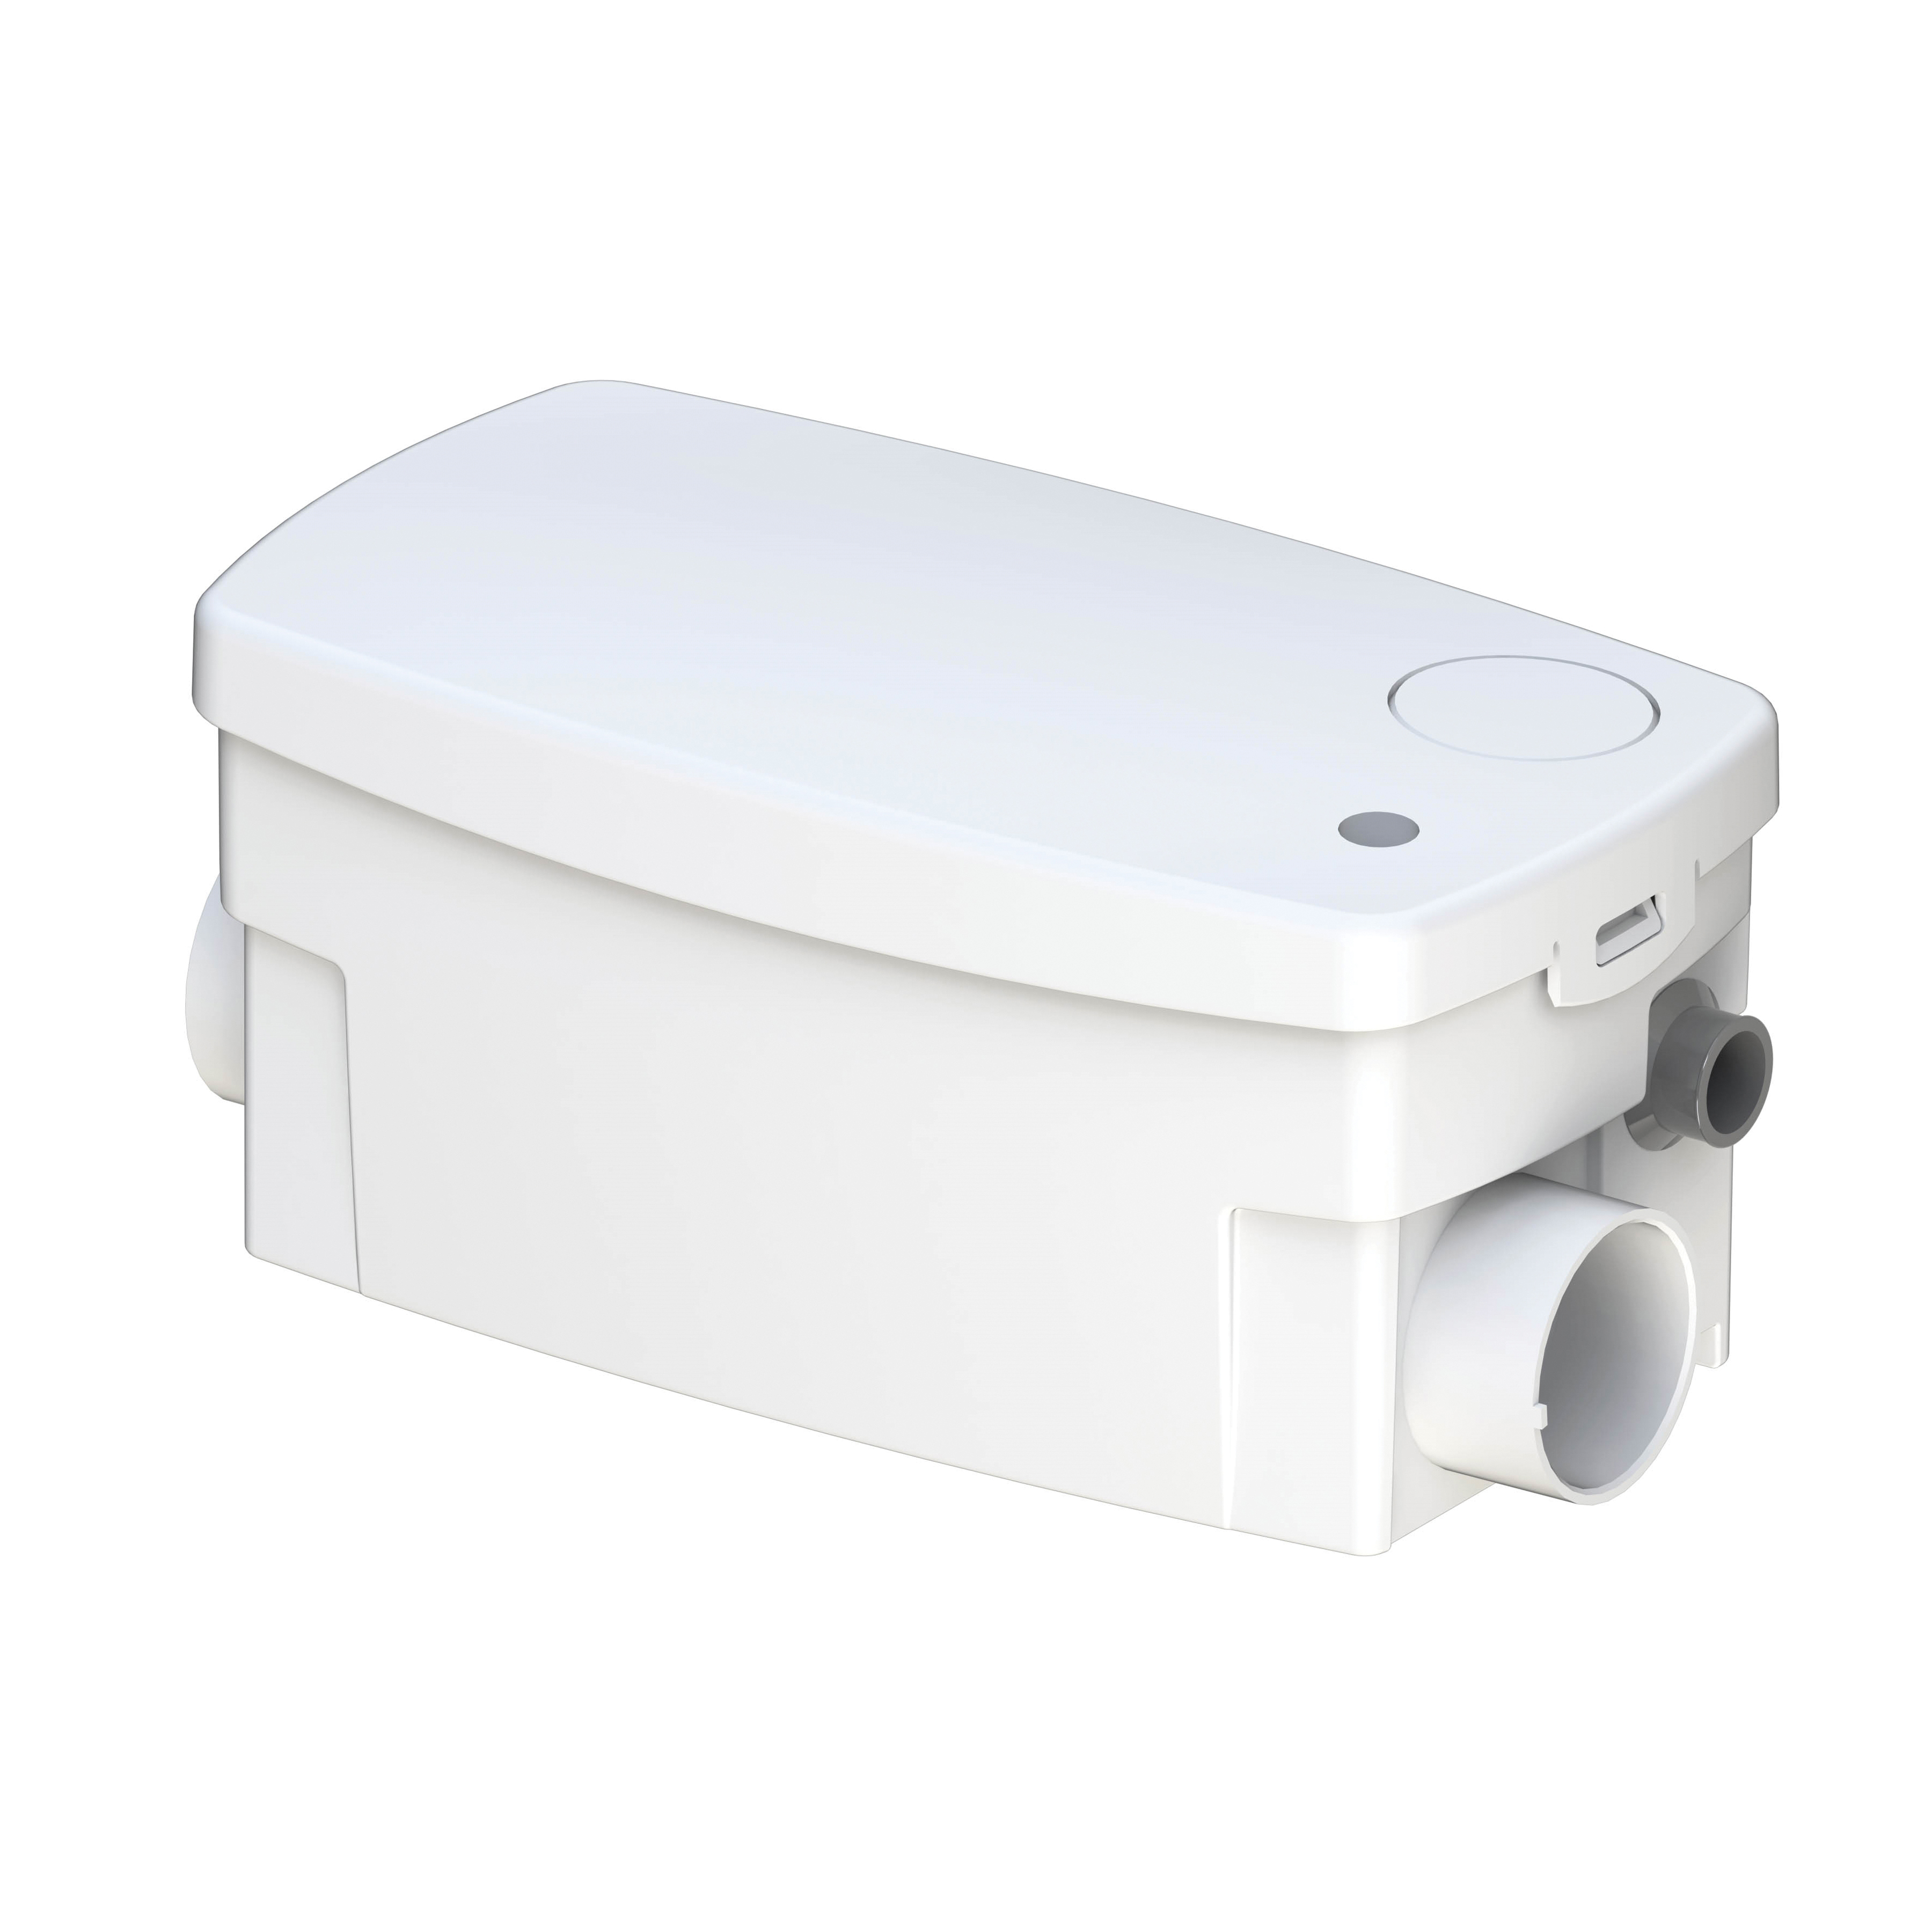 Saniflo® SANISHOWER® 010 Drain Pump, 14 gpm Flow Rate, 2 in Side, 1-1/2 in Top Inlet x 3/4 in Outlet, 120 VAC, 5.5 A, 1 ph